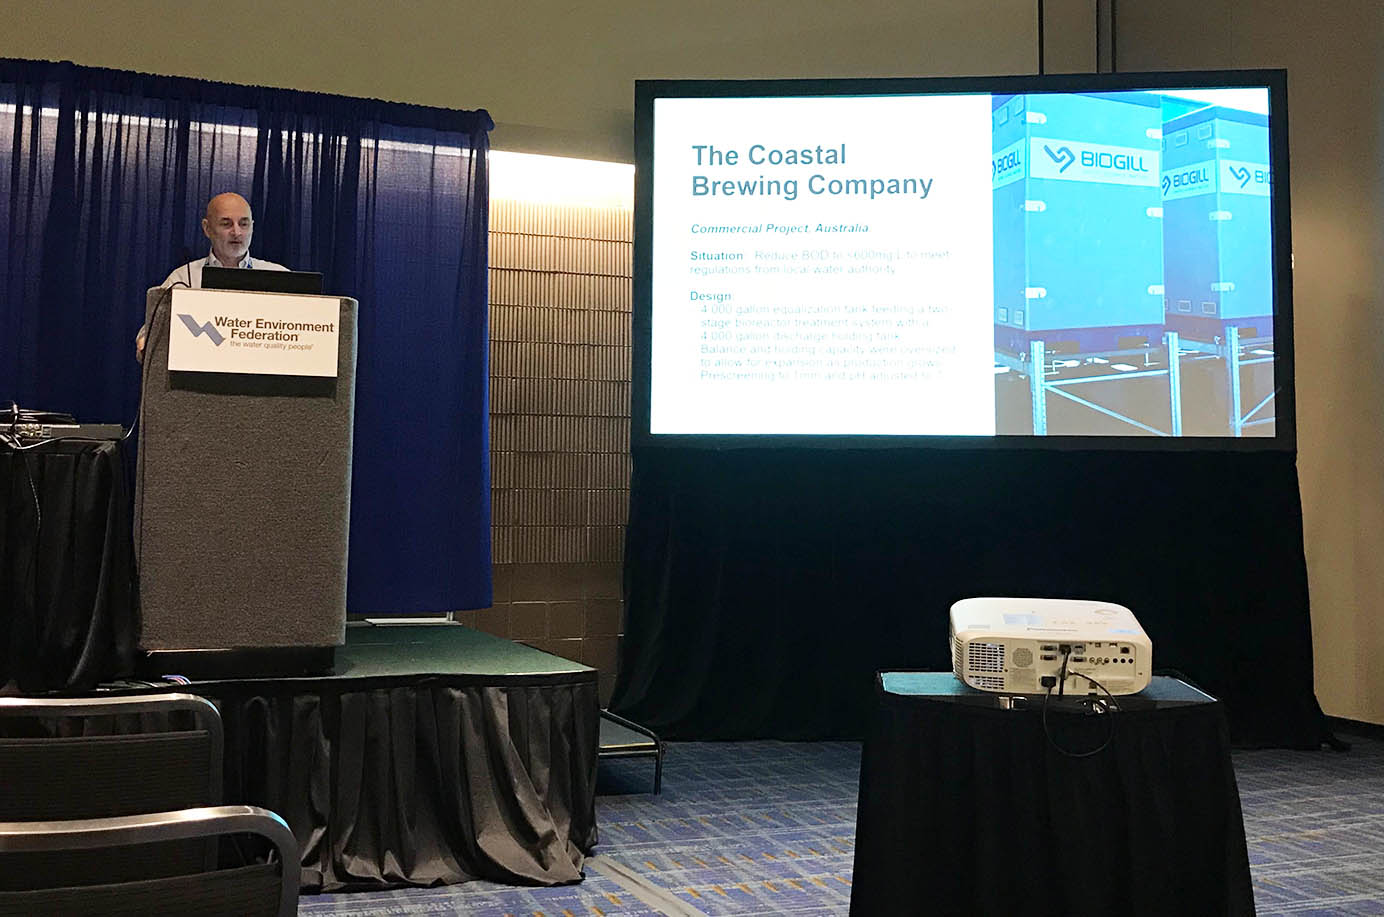 BioGill speaking at WEFTEC